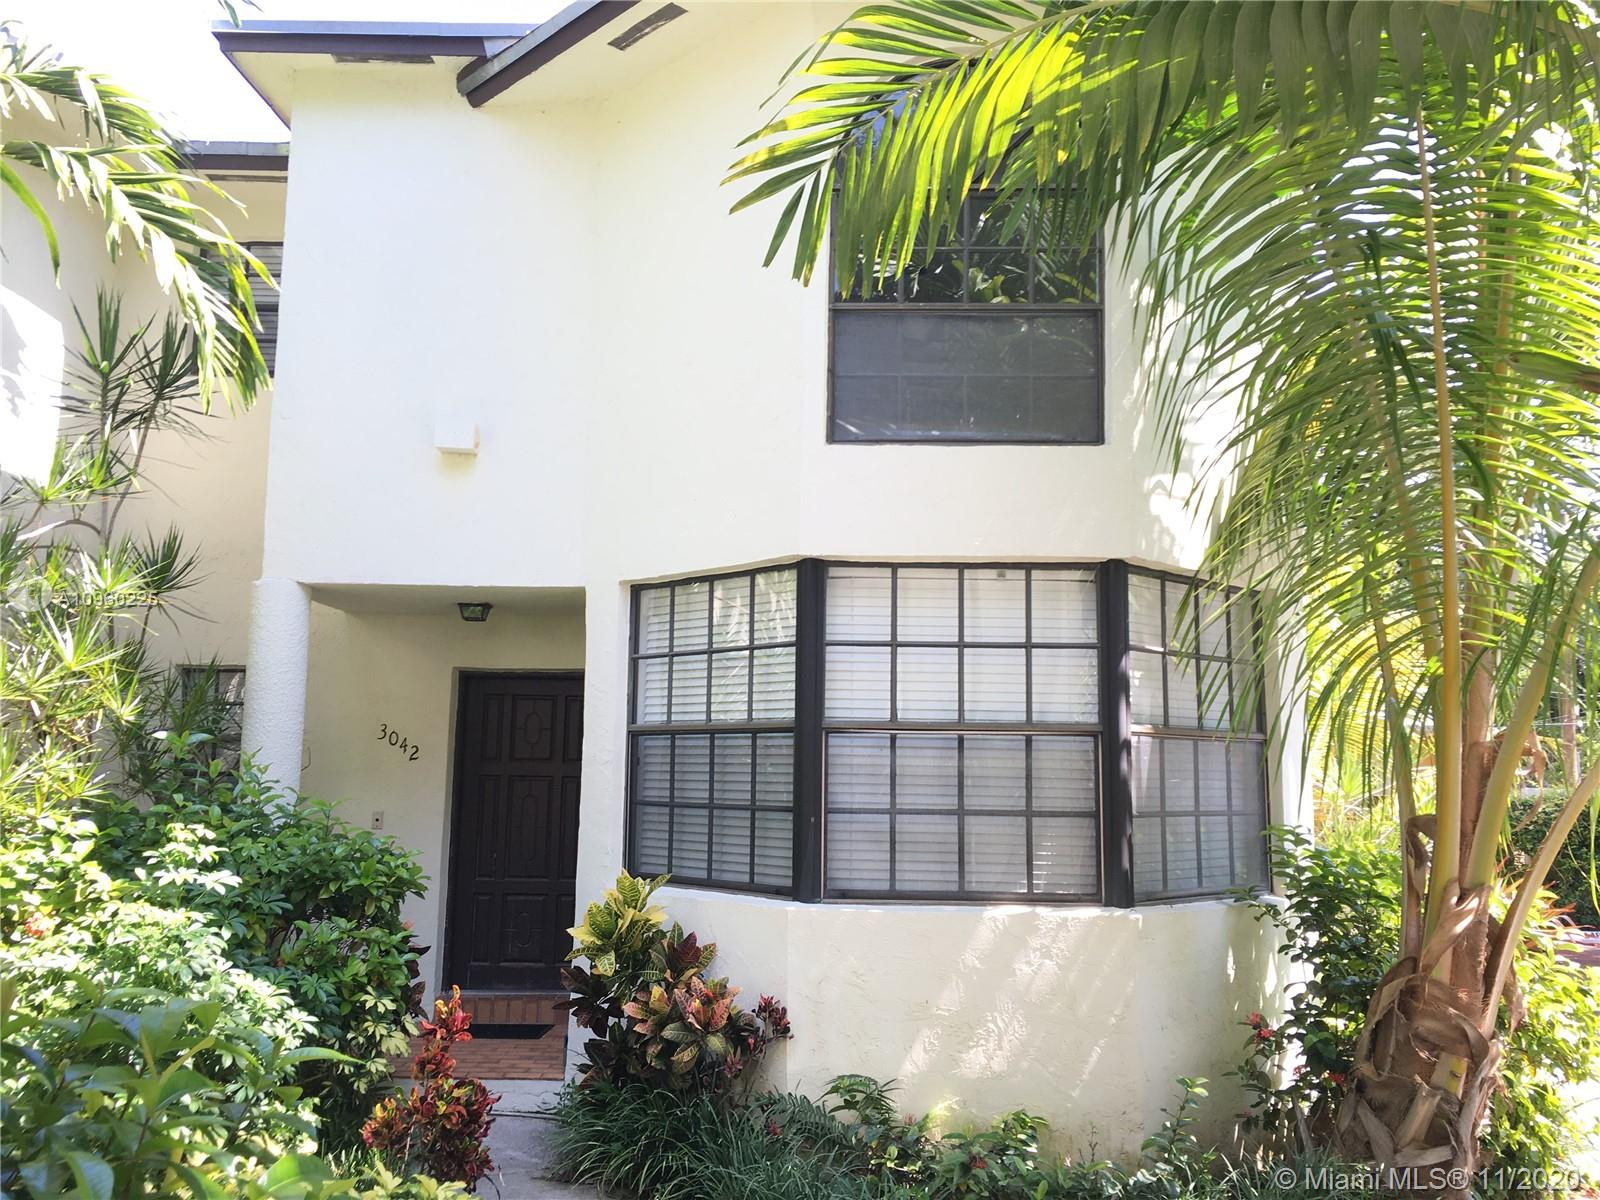 Fantastic opportunity in Coconut Grove. Spacious corner townhouse in small and quiet gated community. Can use the unit as a large 2/2 with additional living space on the first floor or enclose the 3rd bedroom by adding just one wall. Unit has 1 assigned parking (plus guest parking inside the community), washer/dryer in unit and private fenced patio. Walk to Village Center, Cocowalk & Bay. Central location with easy access to Metrorail, Beaches, Airport and all of Miami. Leases and small pets allowed (Pets with less than 20 lbs). Please, check Showing Assist for all showing instructions. Easy to show. Thank you!